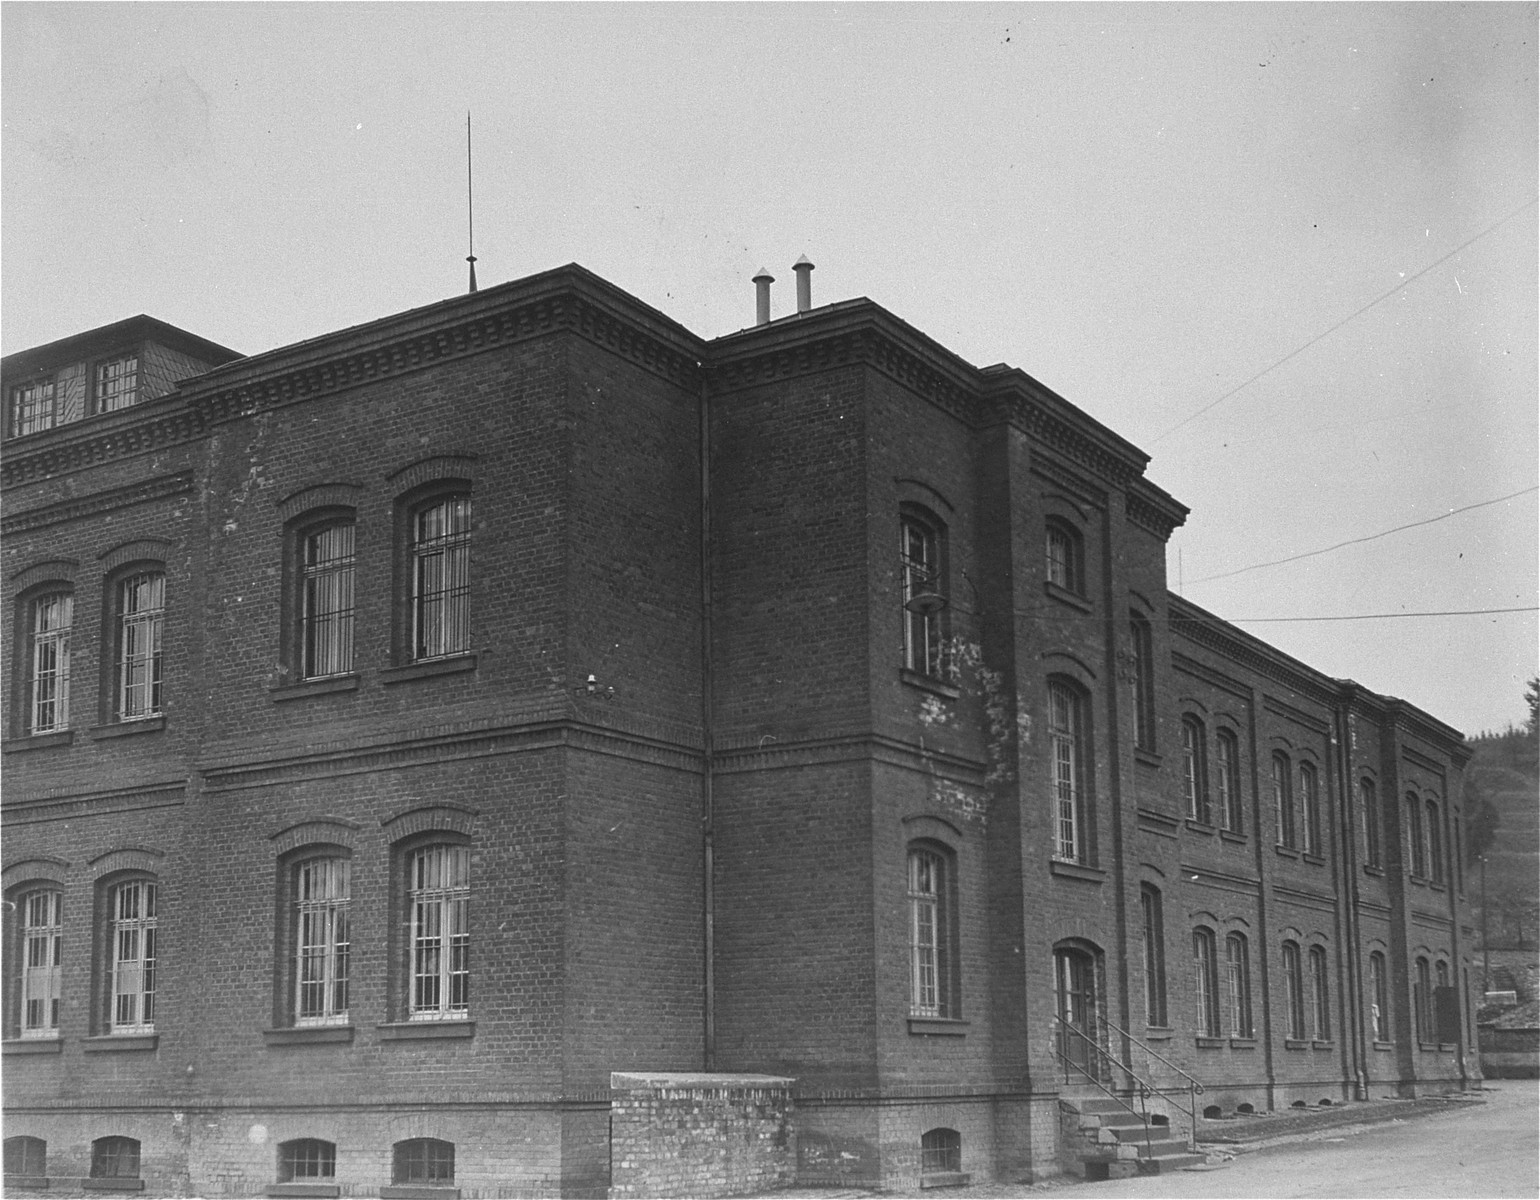 Exterior view of the main building of the Hadamar Institute.   The photograph was taken by an American military photographer soon after the liberation.